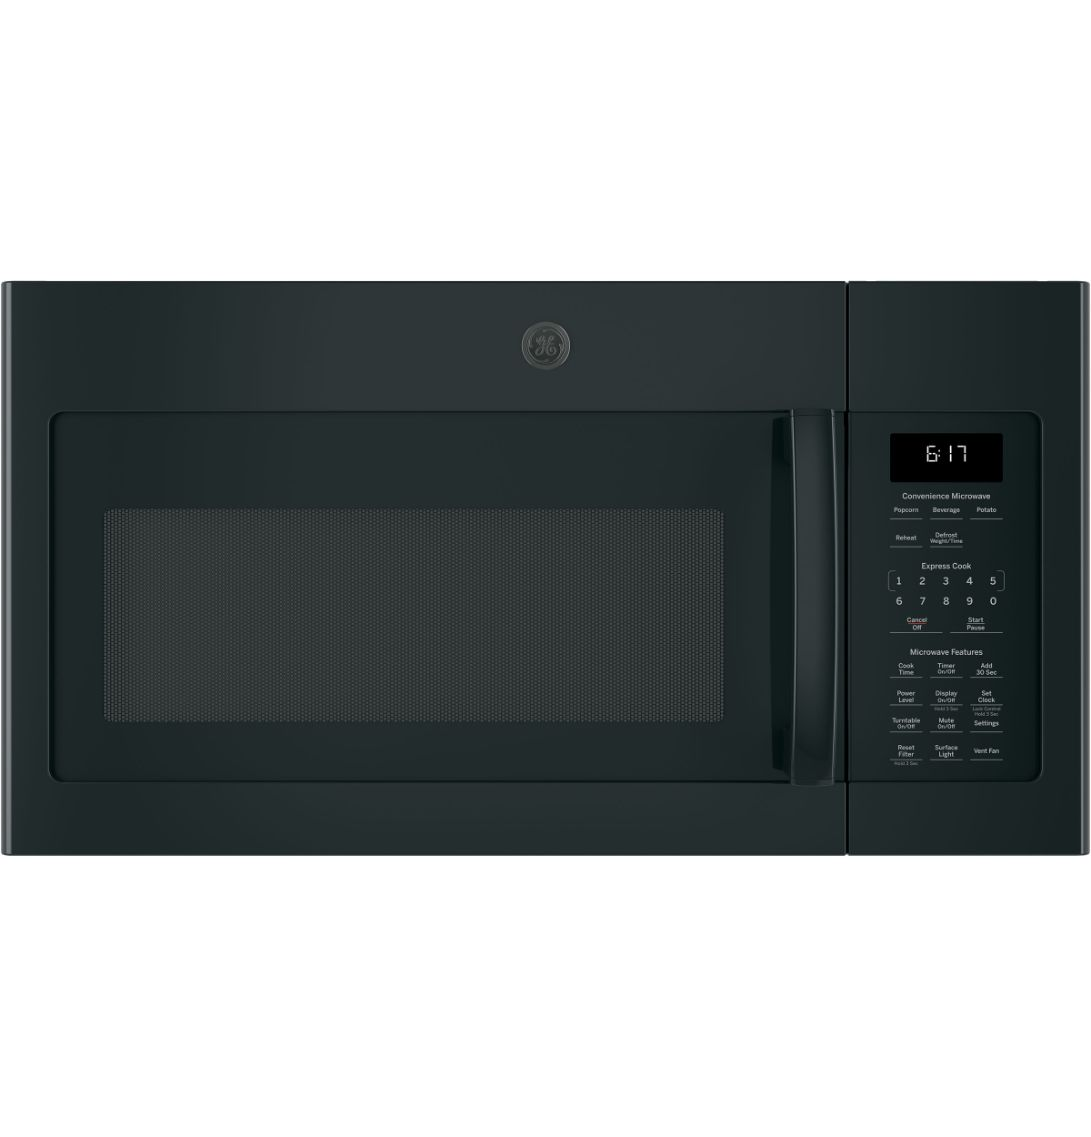 GE 1.6 Cu. Ft. Over-the-Range Microwave Oven with Recirculating Venting